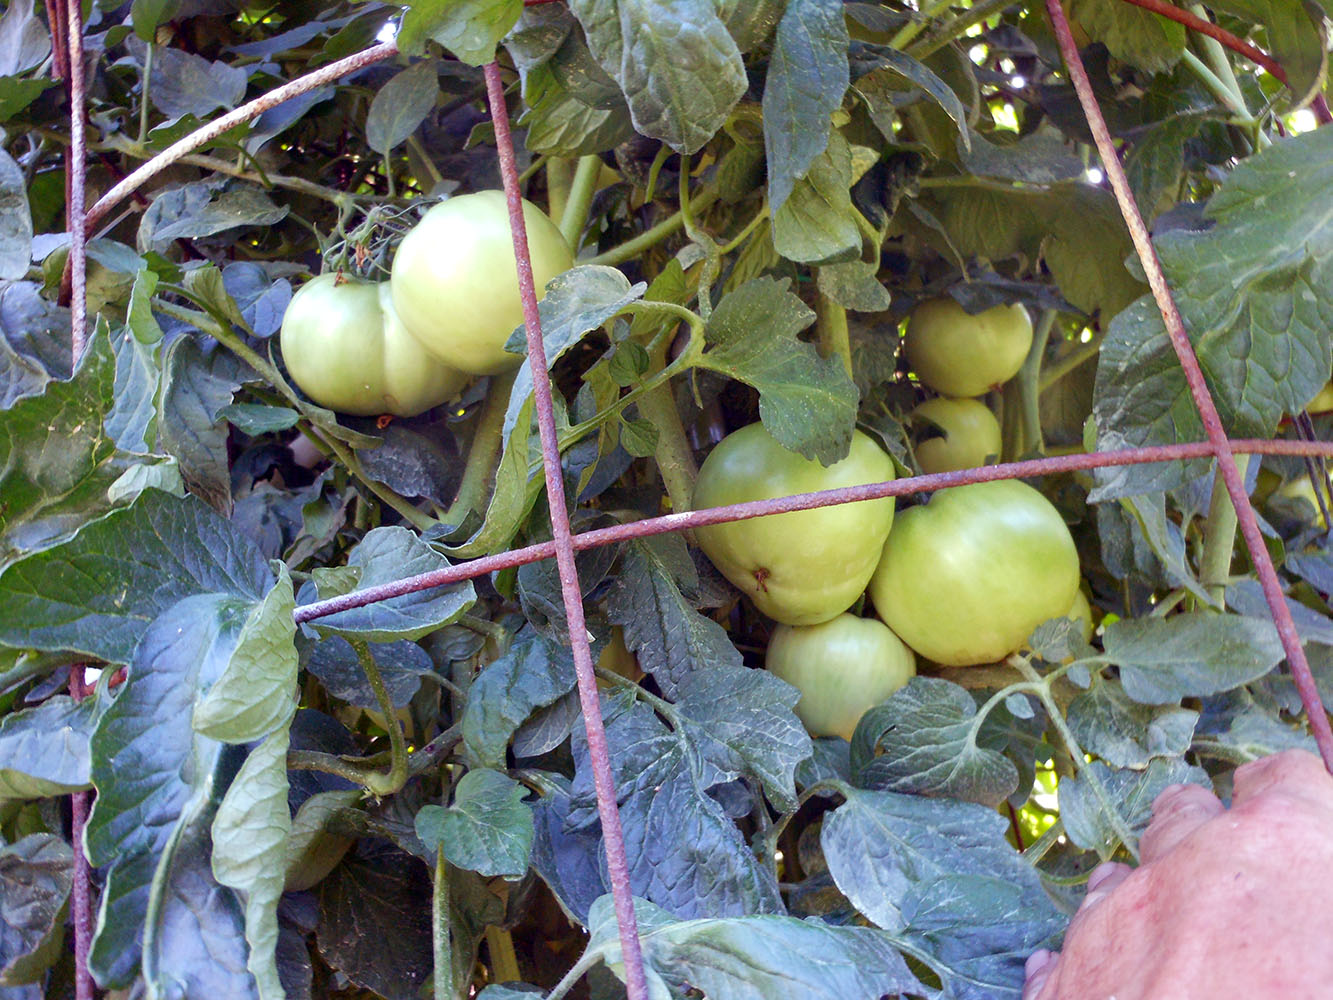 06-25-2015 Garden 01 Better Boy Tomatoes 02